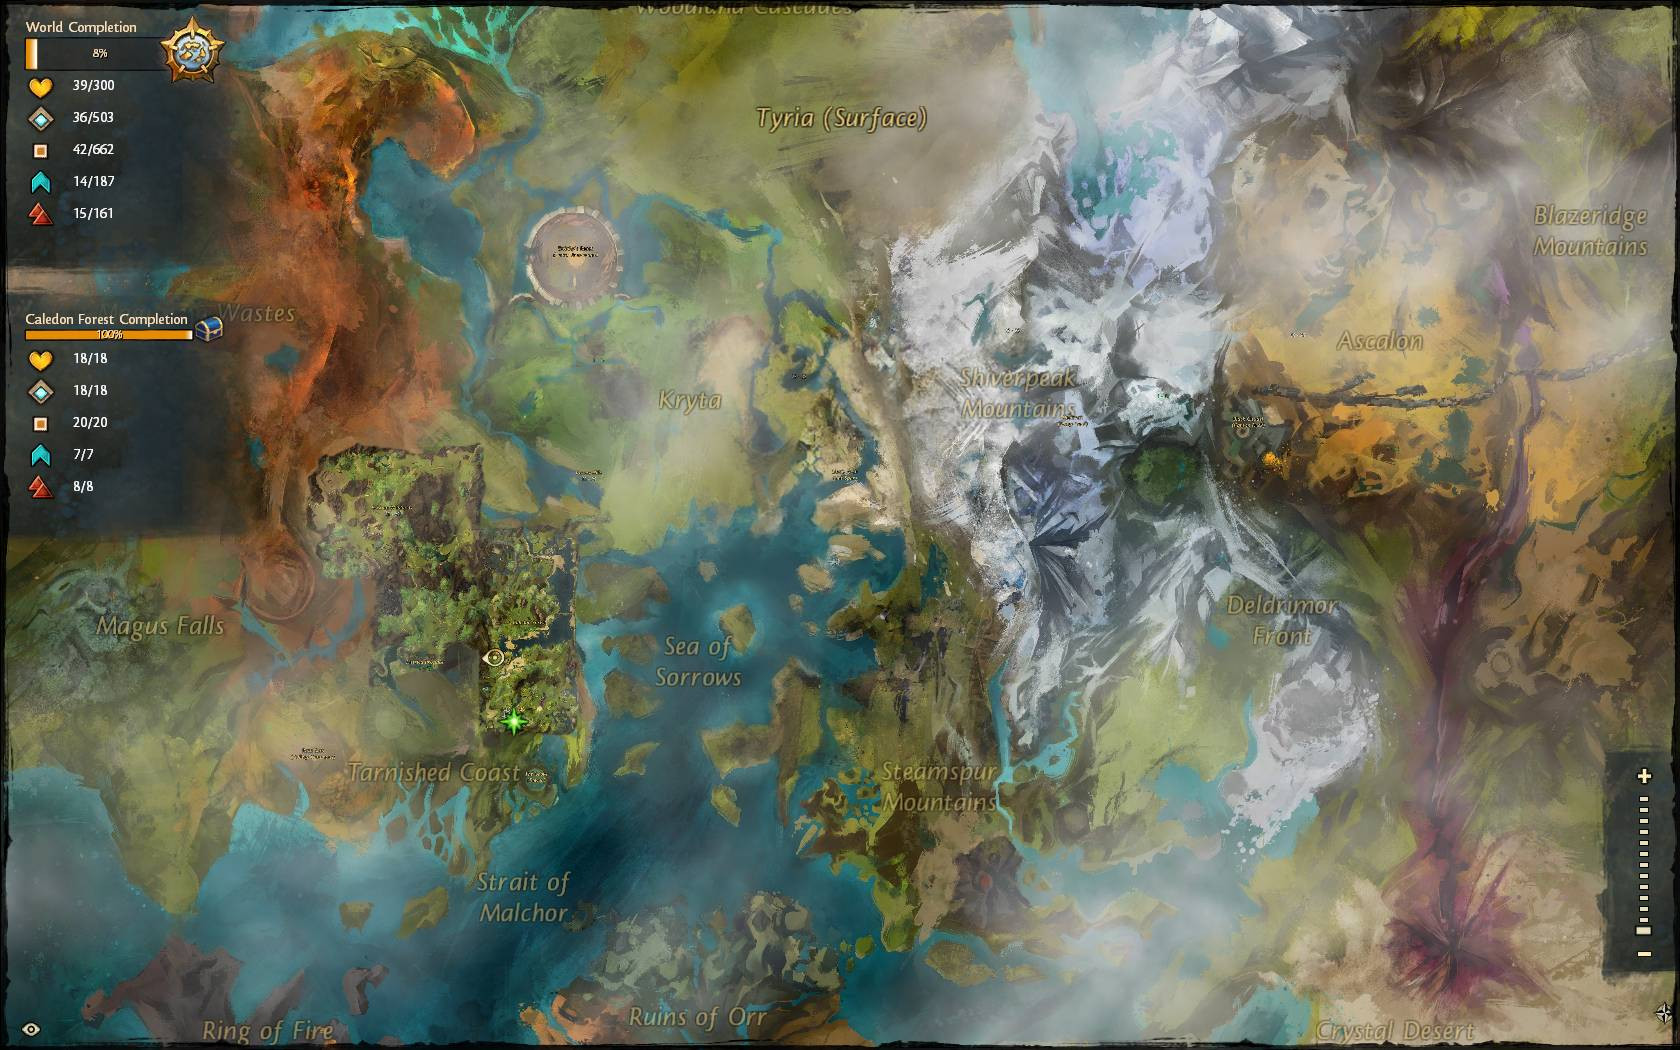 Guild Wars 2 Printable Map Unique World Maps All Countries Cities and Regions the Throughout Www